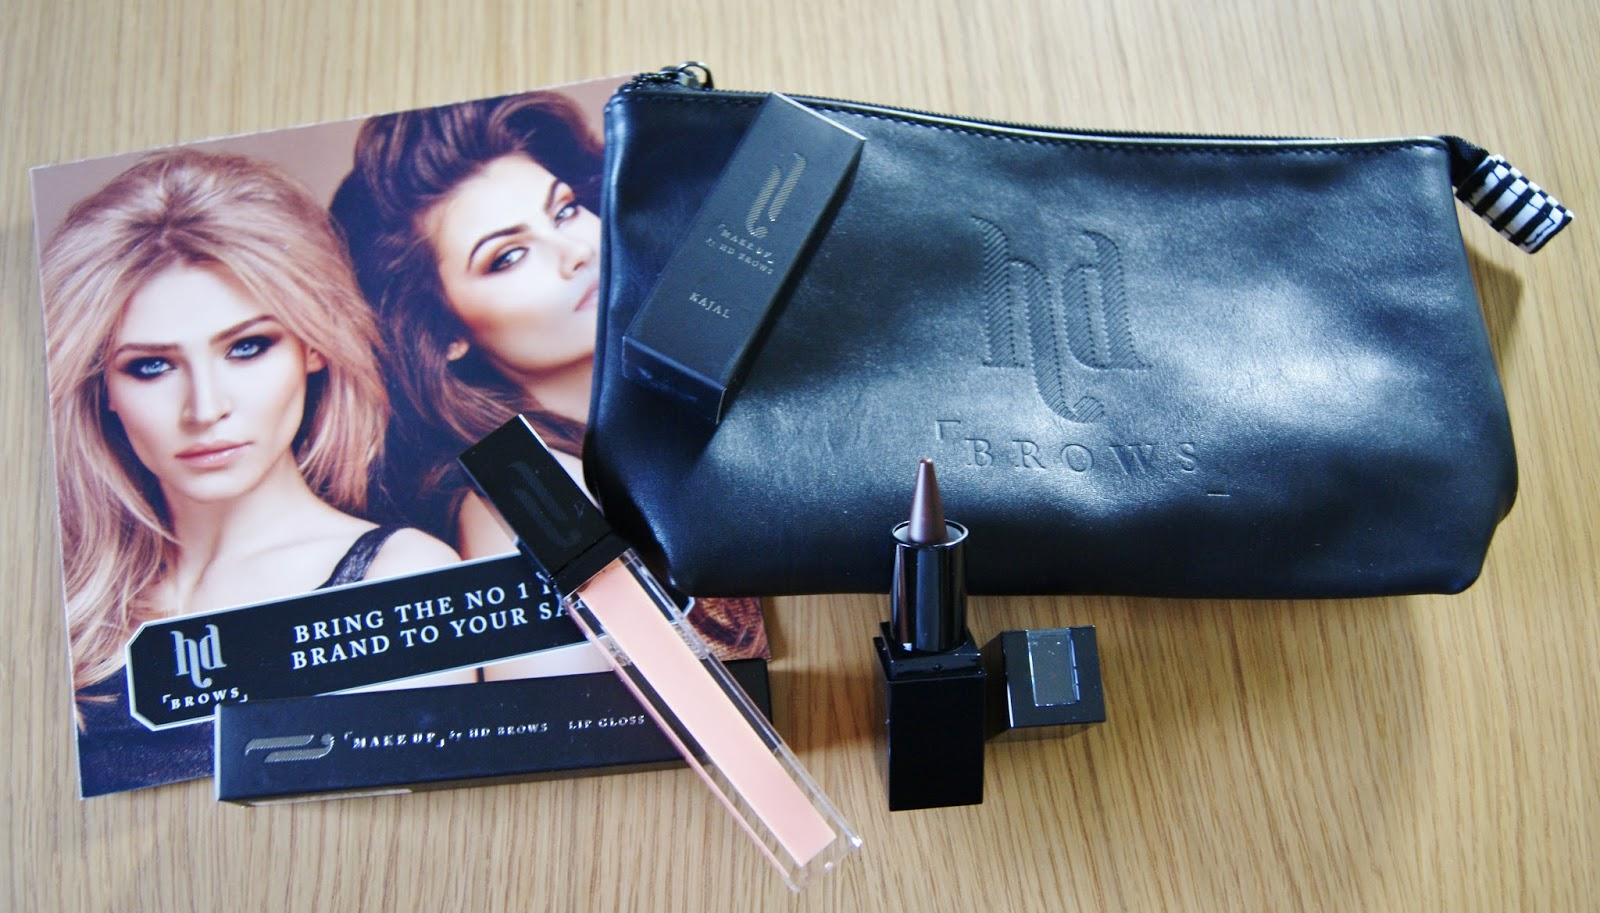 HD Brows Makeup